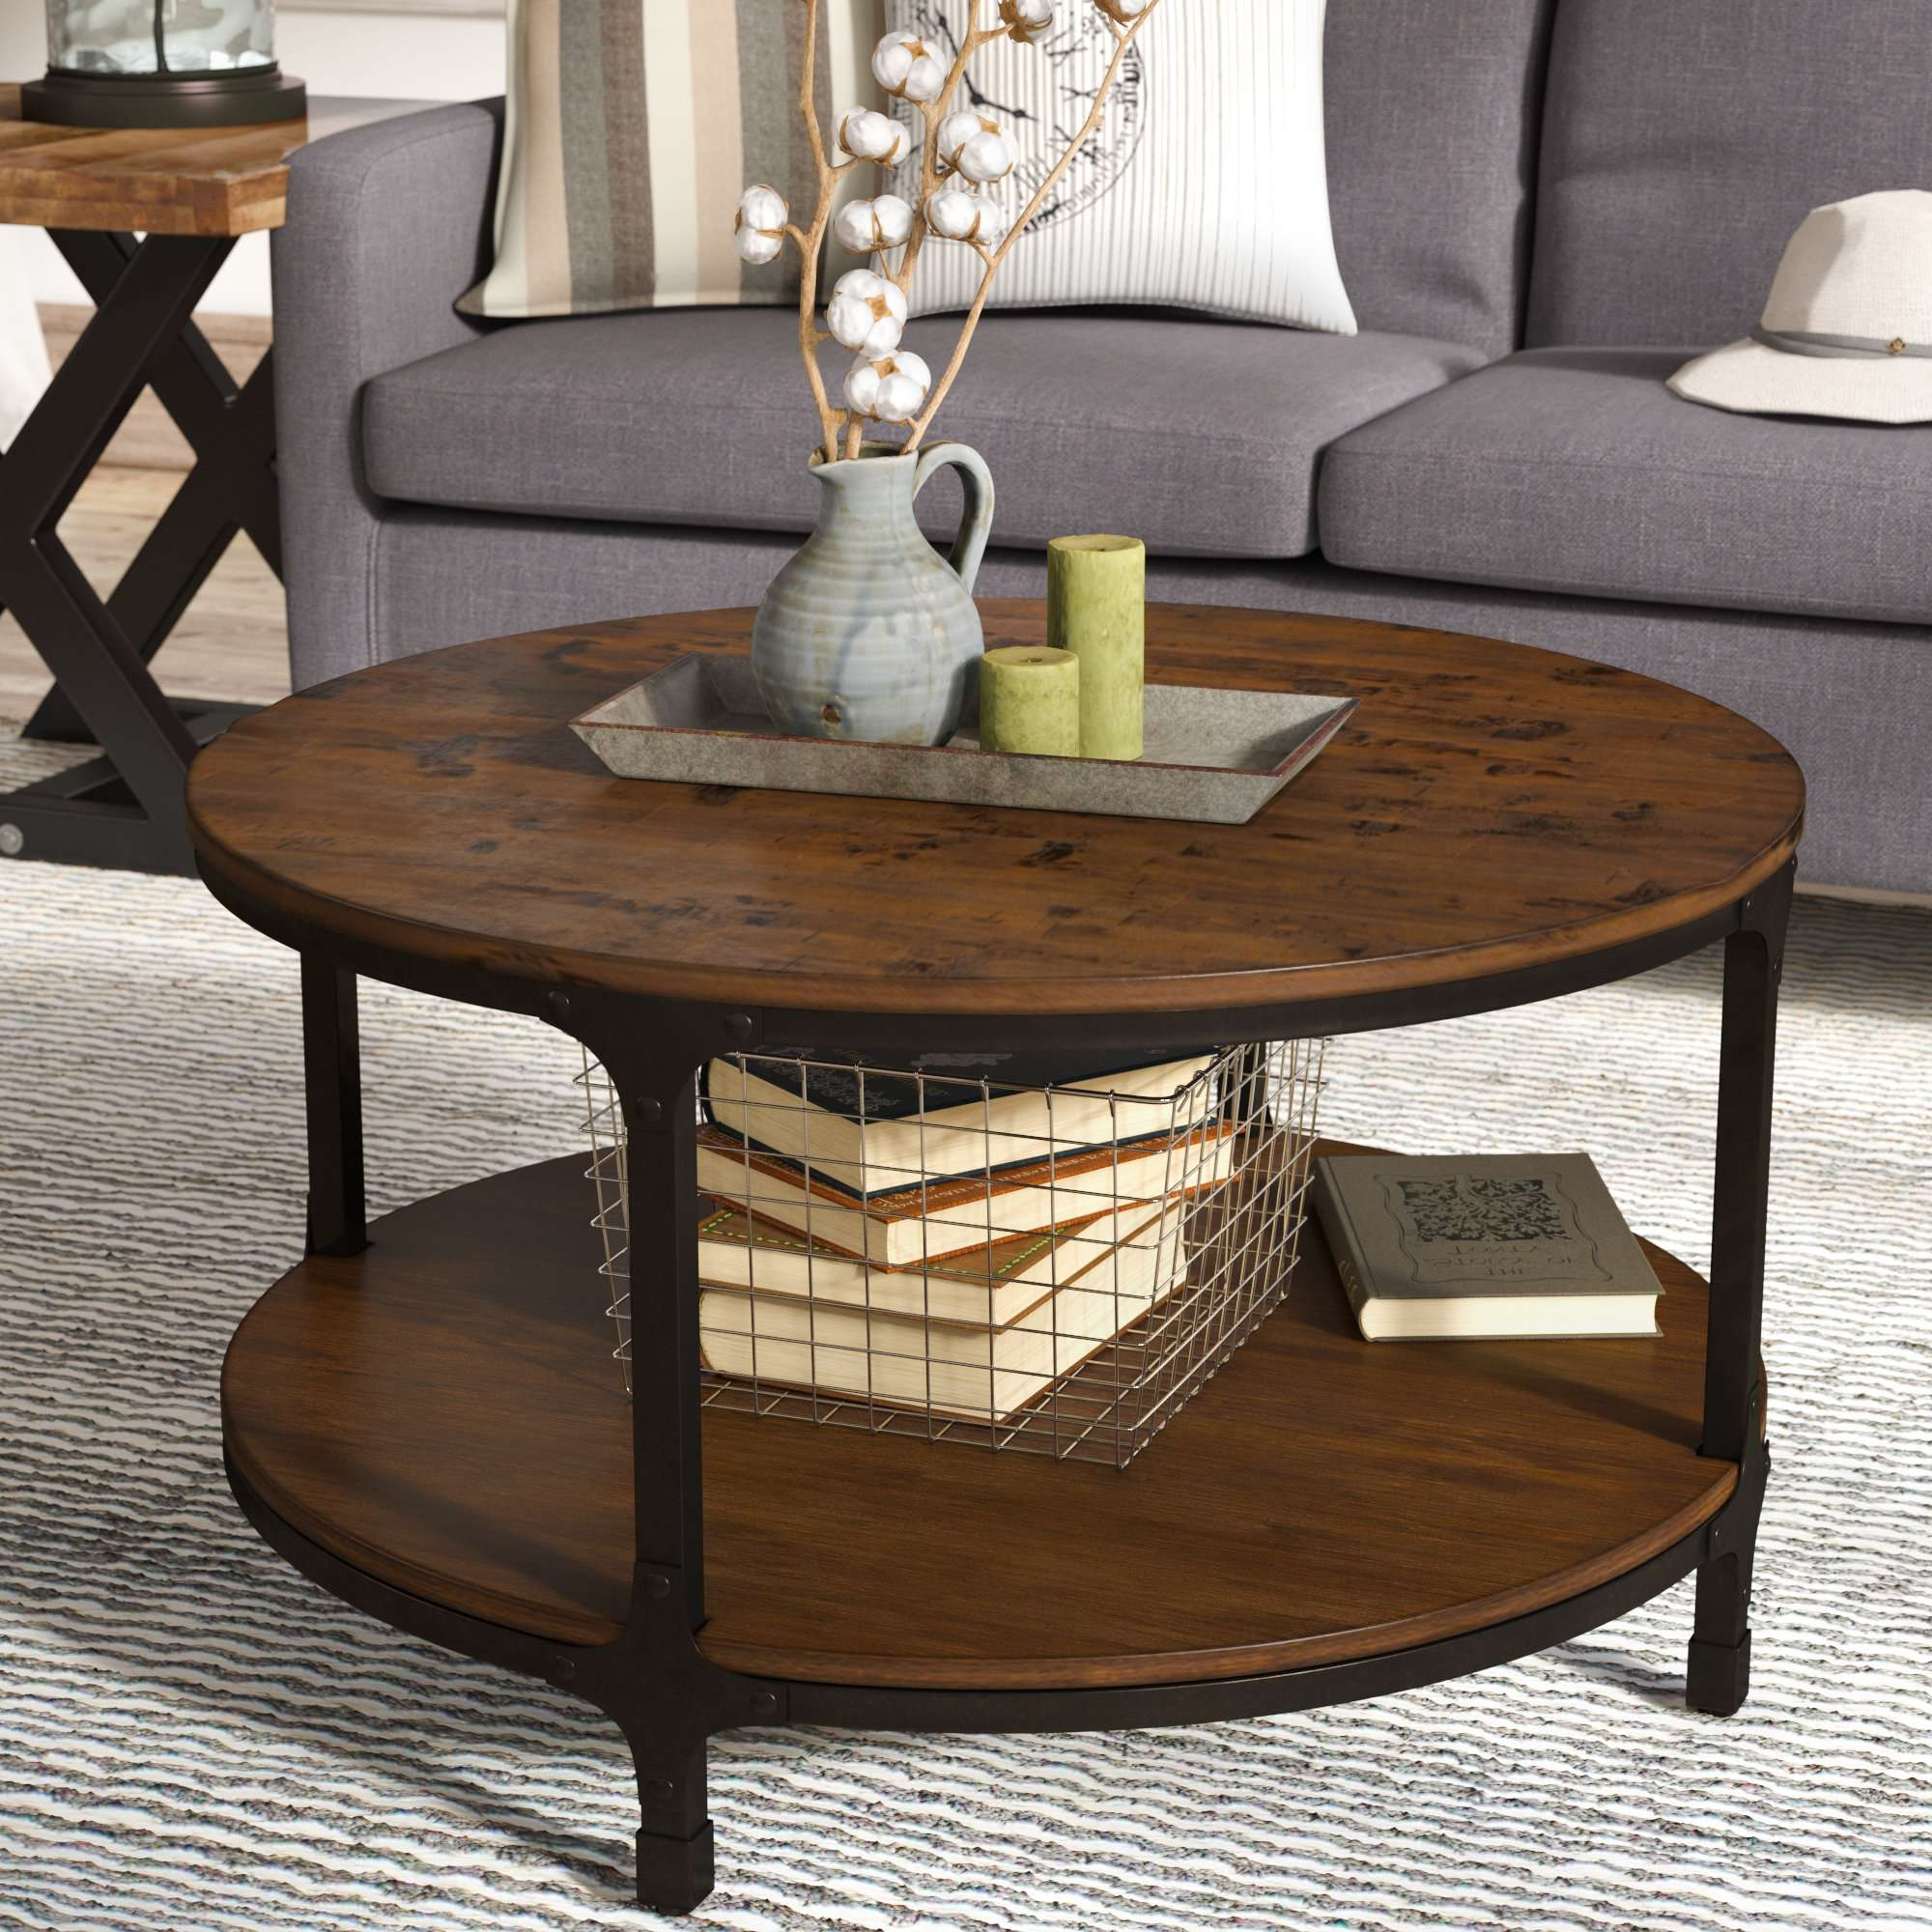 Wayfair For Best And Newest Small Circular Coffee Table (View 5 of 20)